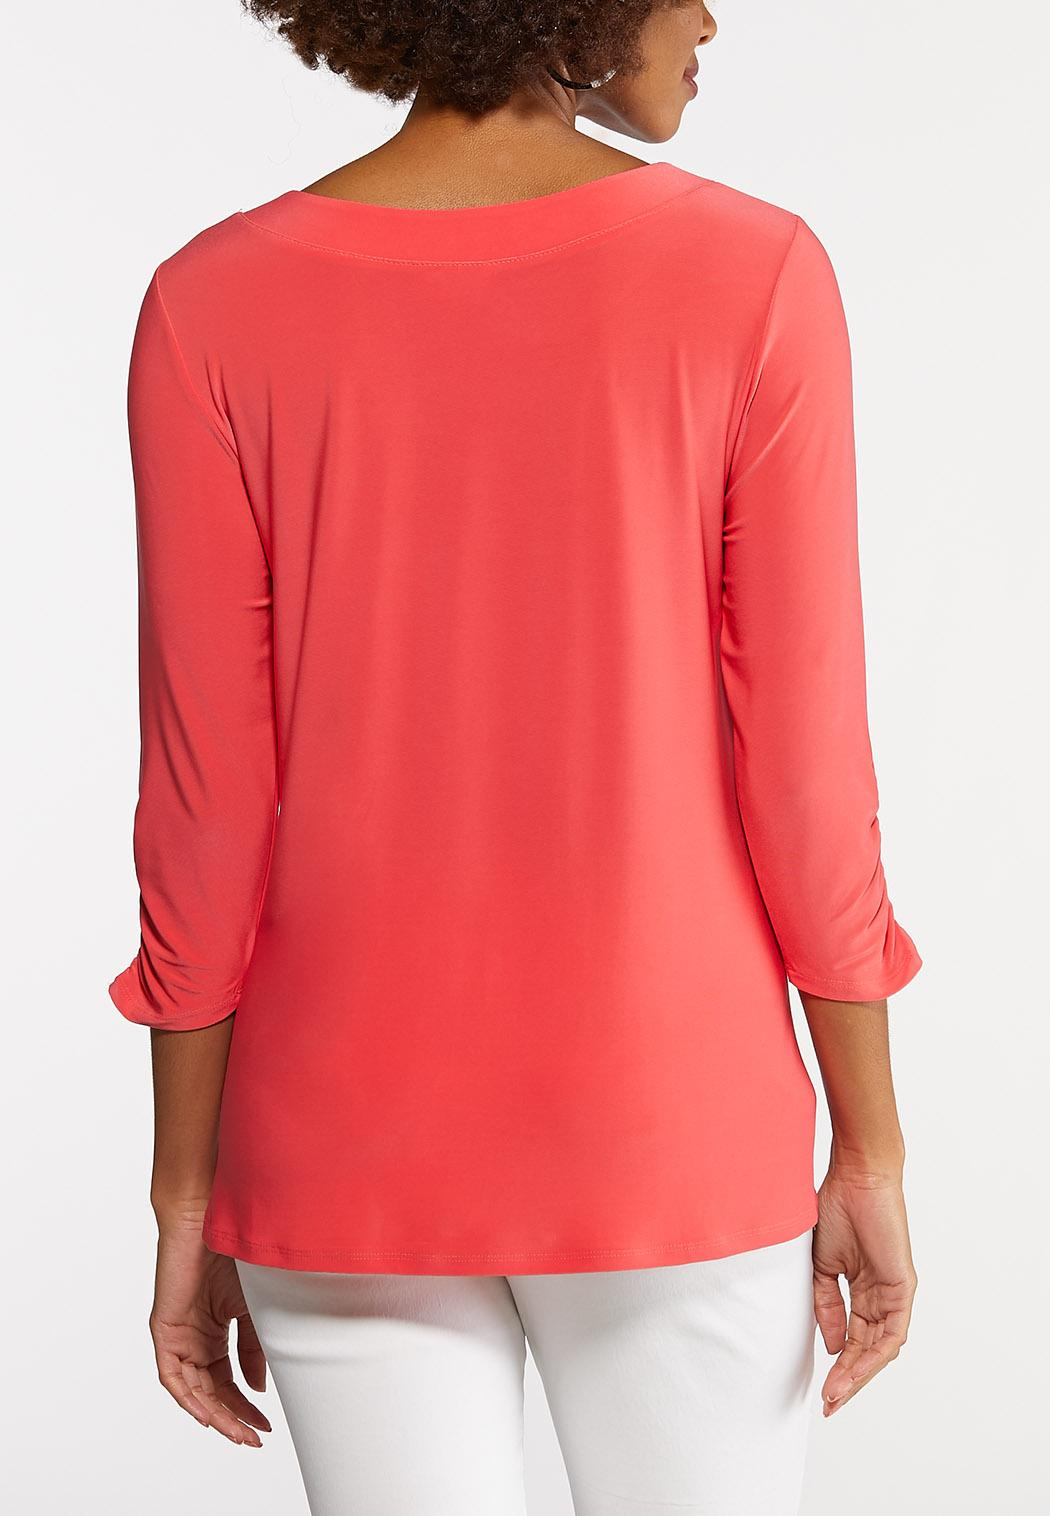 Plus Size Grommet Ruched Sleeve Top (Item #43923102)